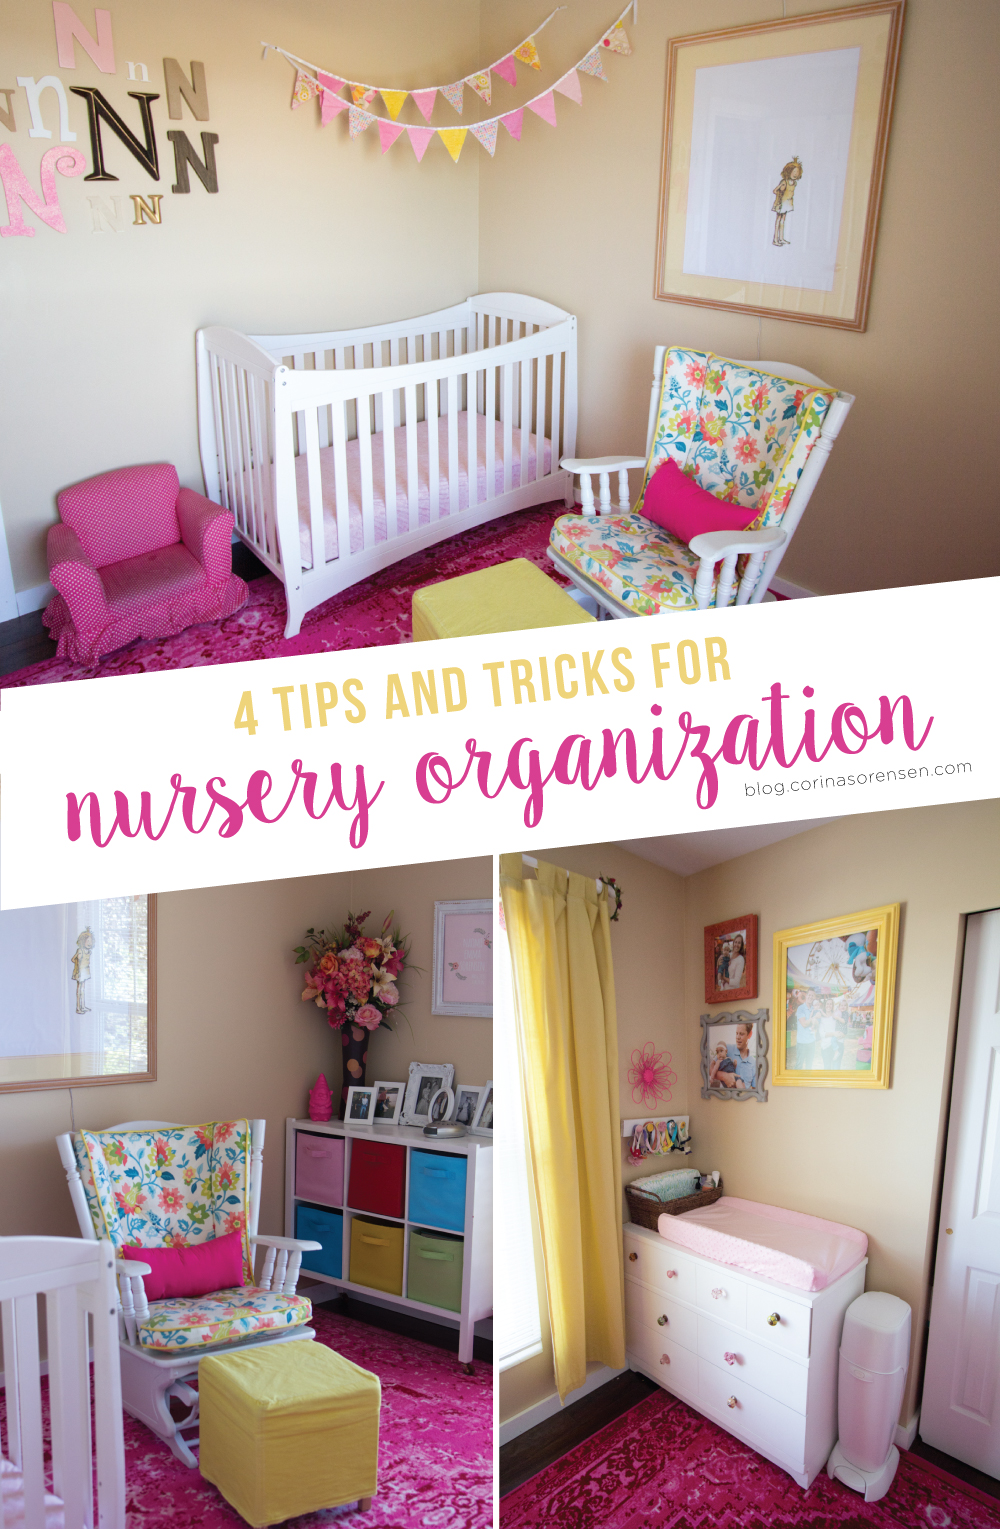 4 Tips and Tricks for Nursery Organization